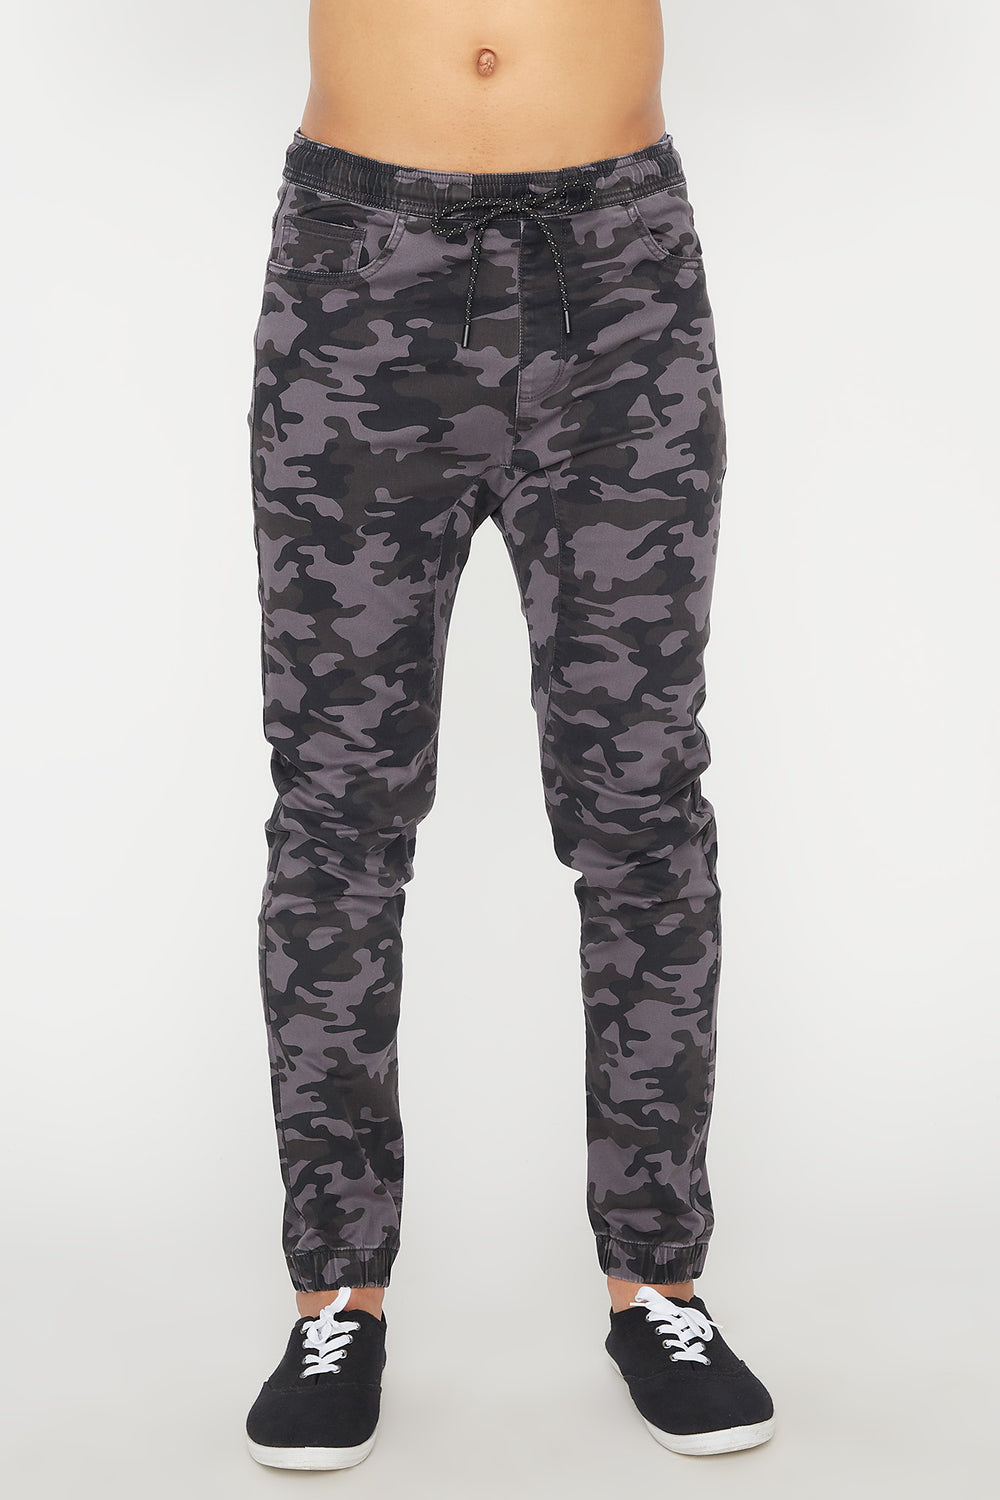 Zoo York Mens 5 Pocket Camo Jogger Gingham